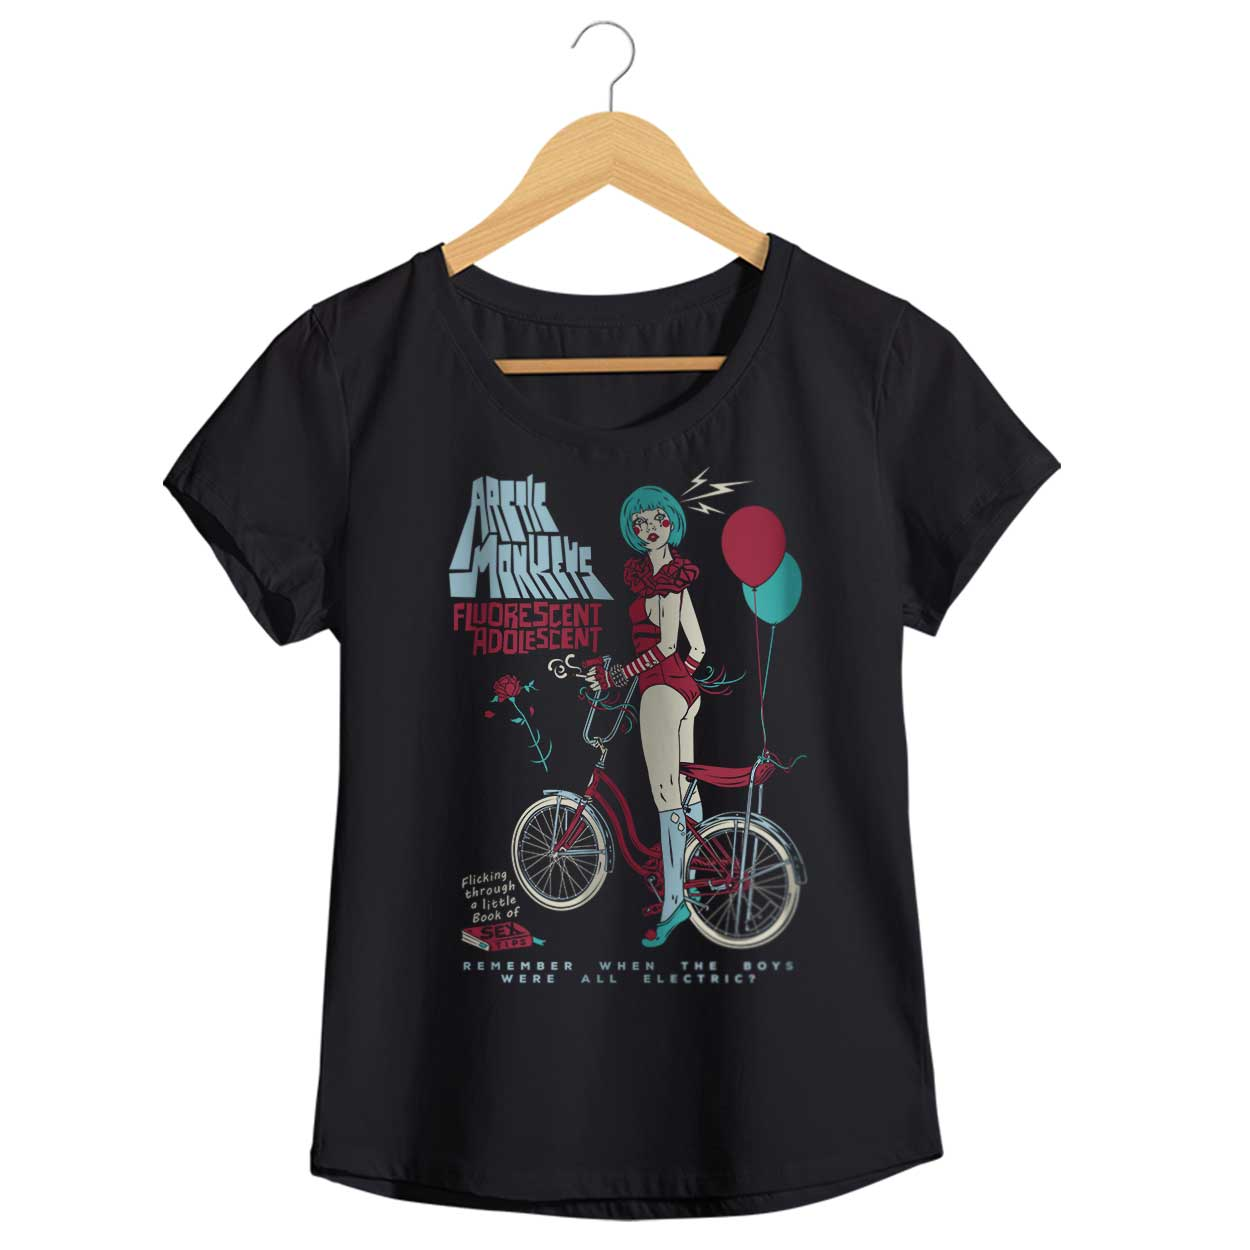 Camiseta - Fluorescent Adolescent - Artic Monkeys - Feminino